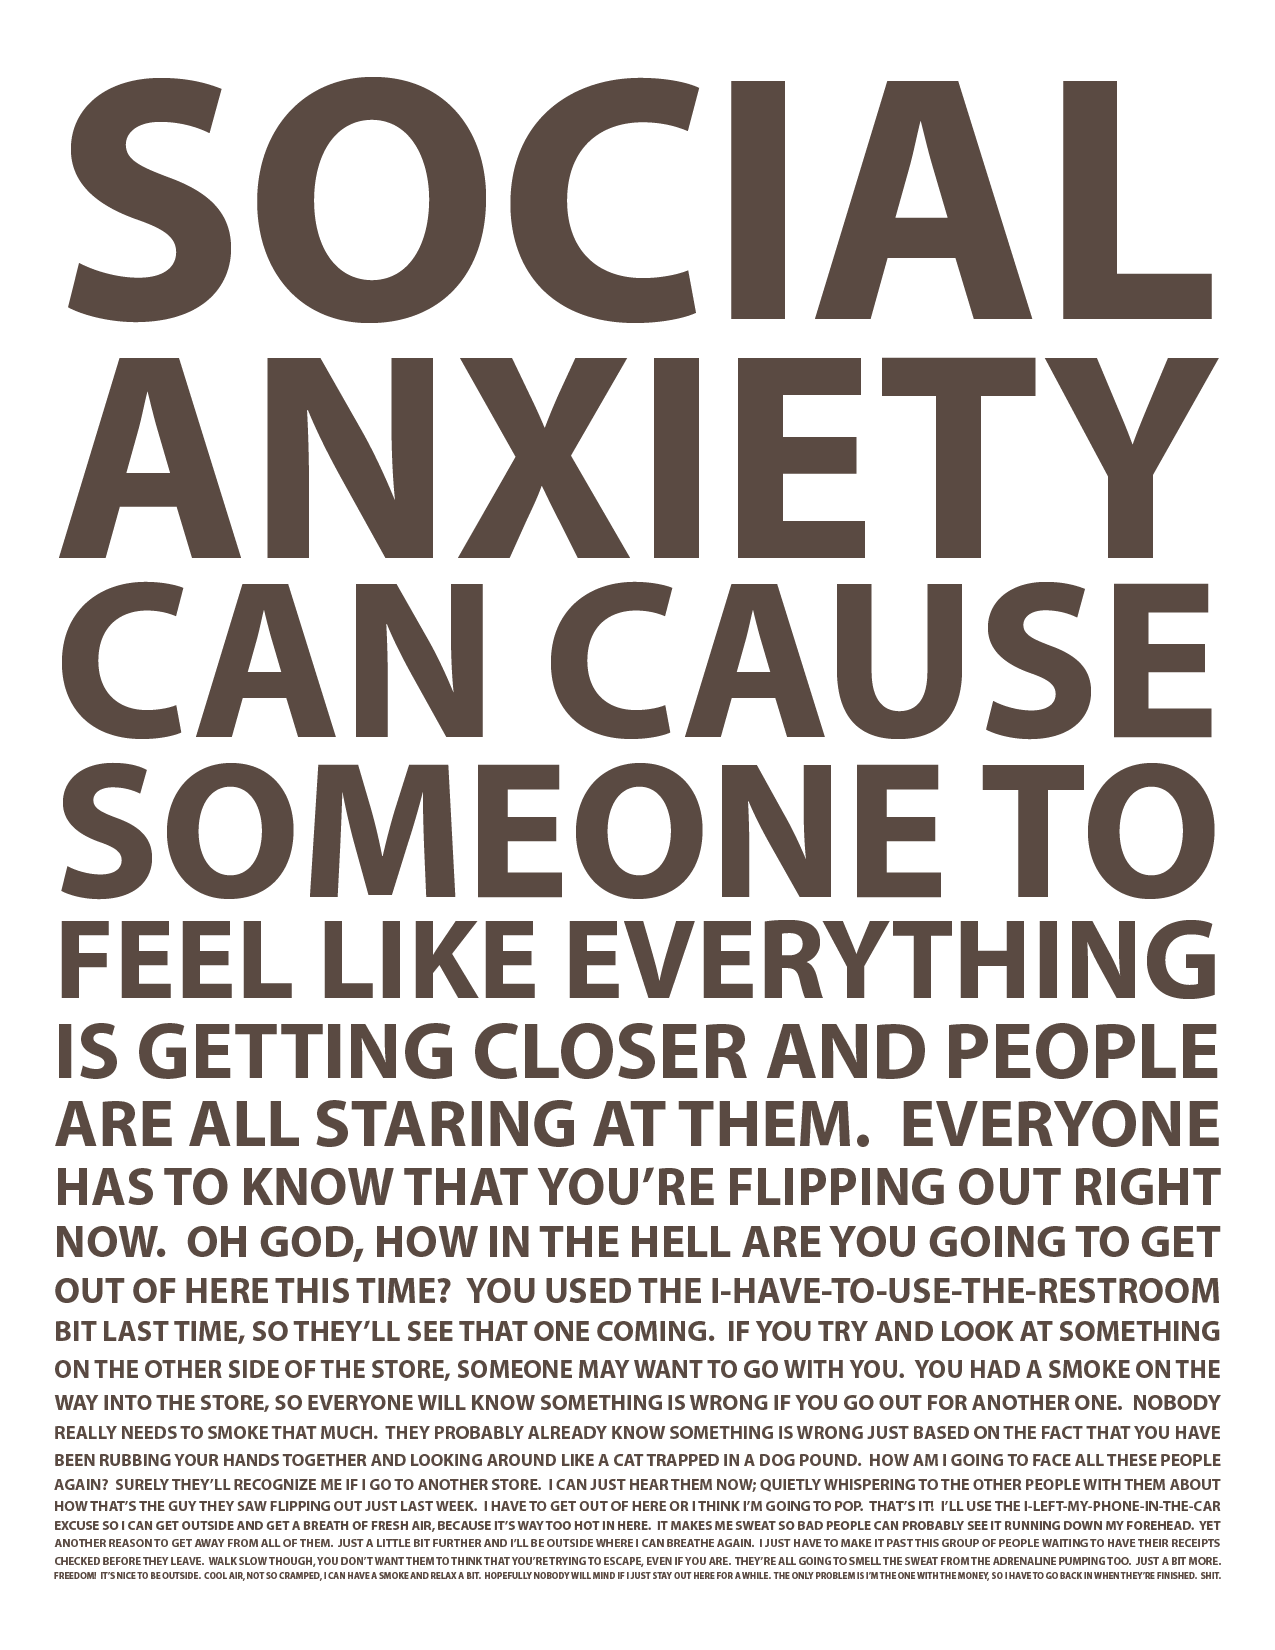 Panic attack general anxiety disorder essay